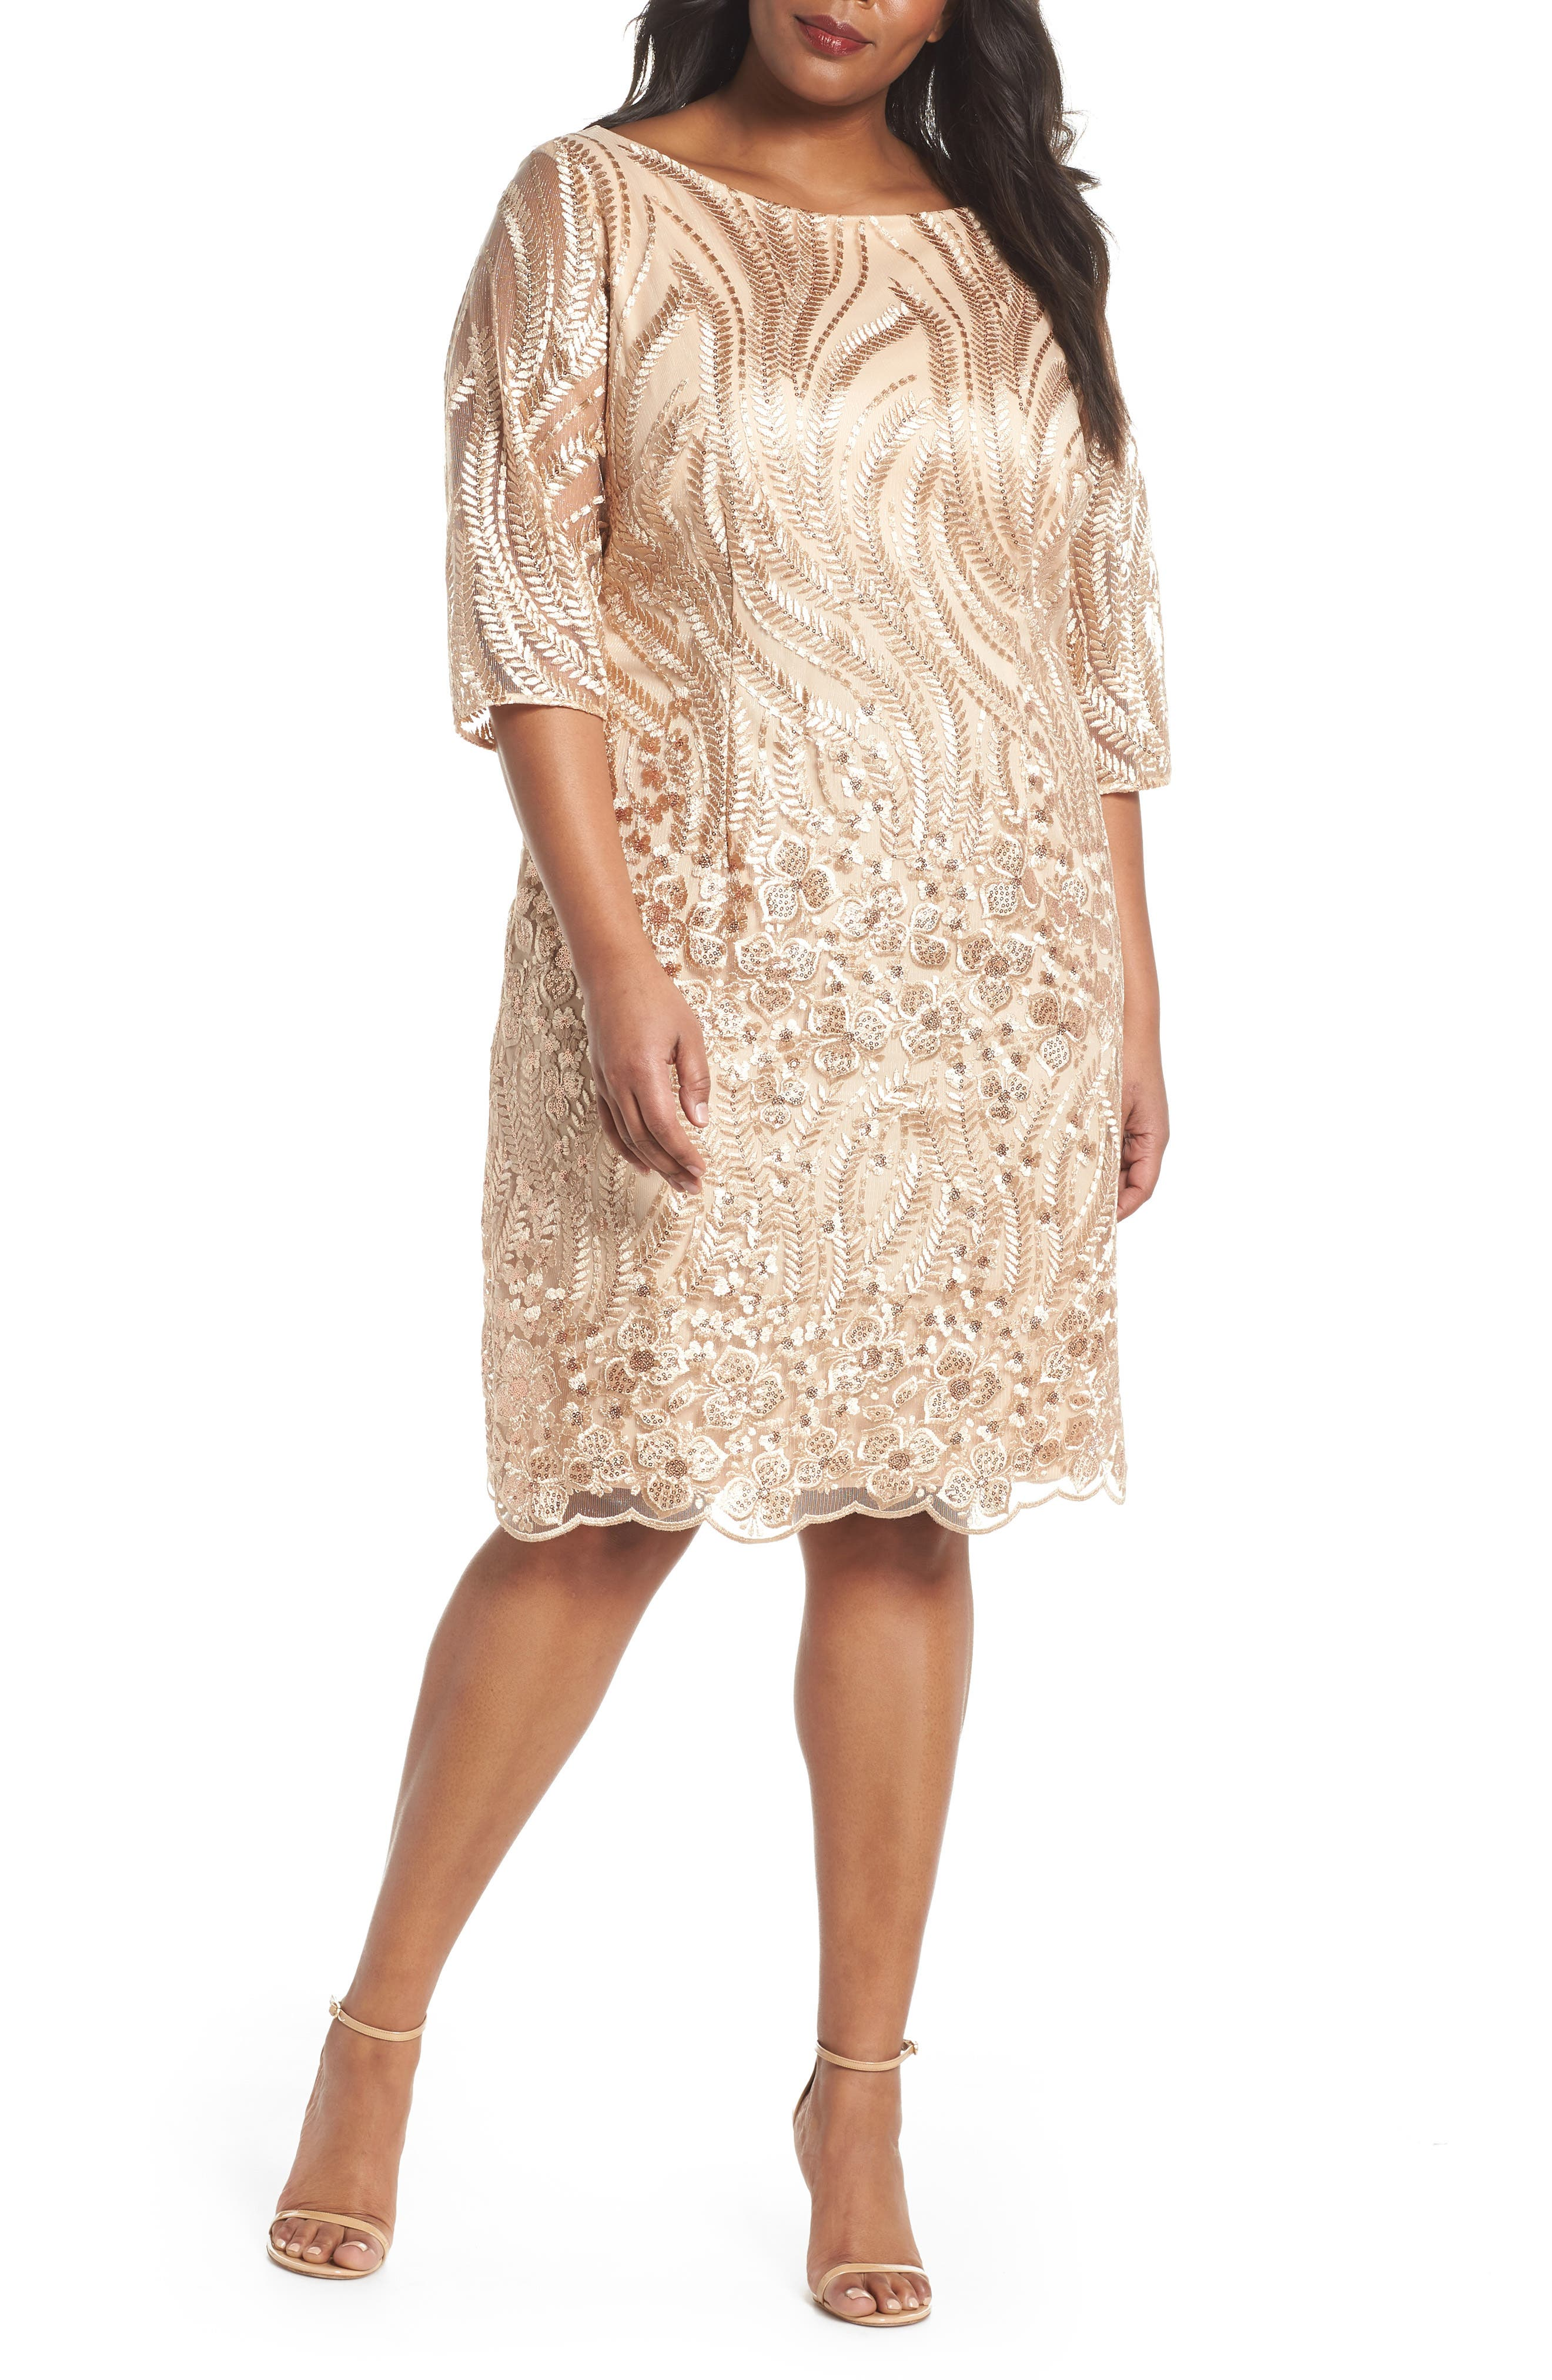 Alternate Image 1 Selected - Brianna Sequin Embroidered Lace Sheath Dress (Plus Size)